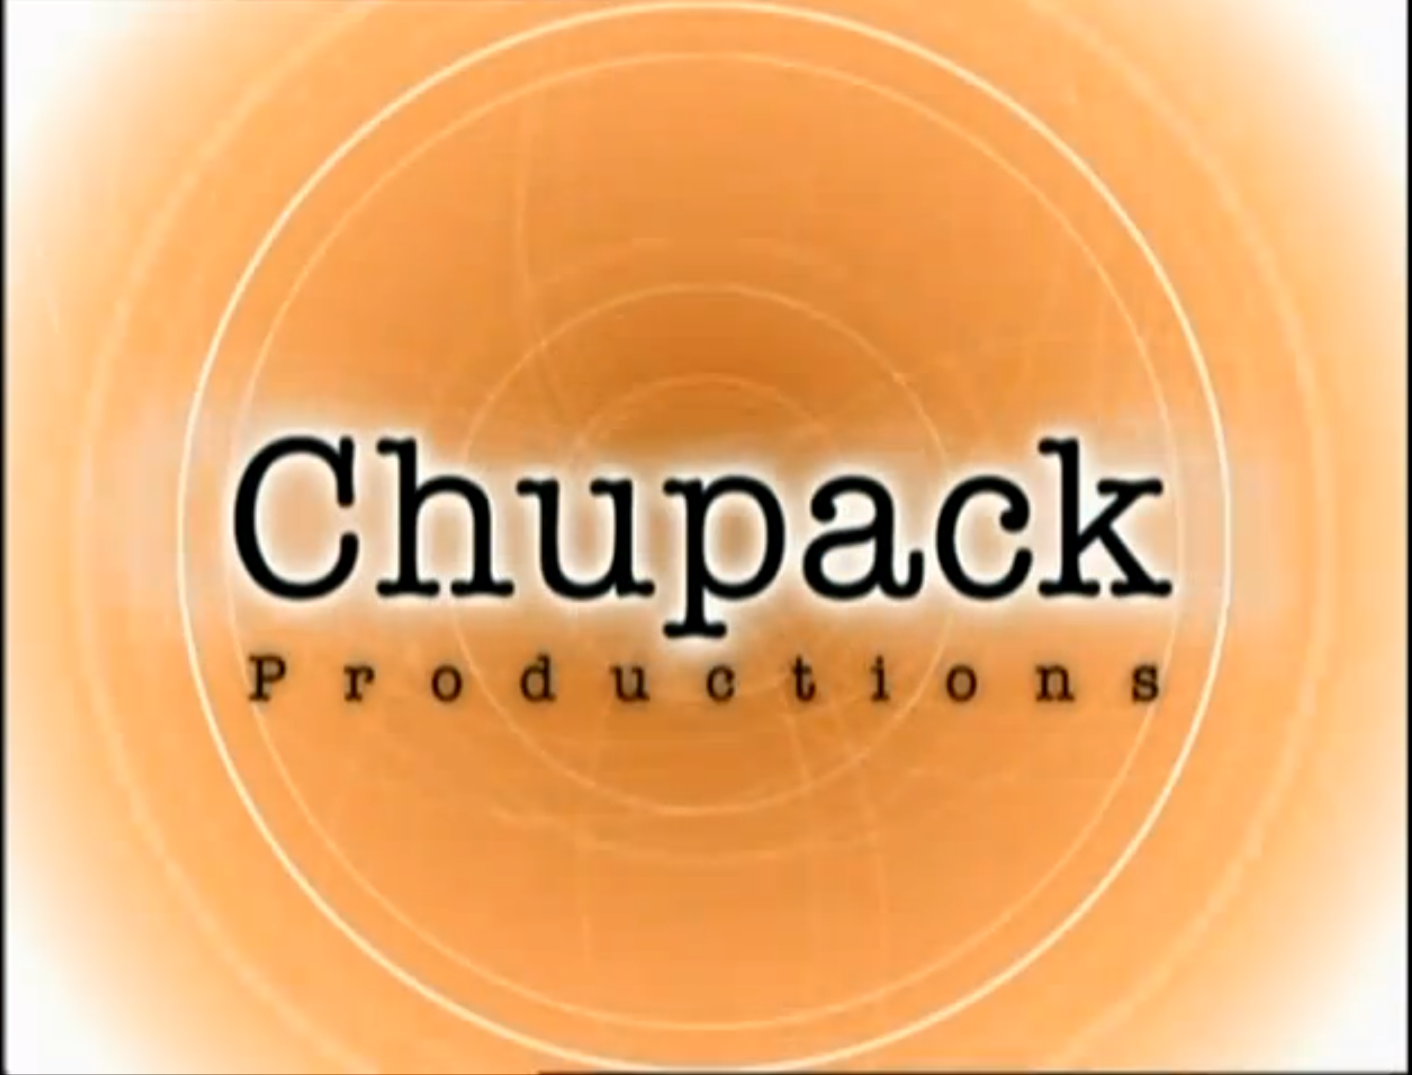 Chupack Productions